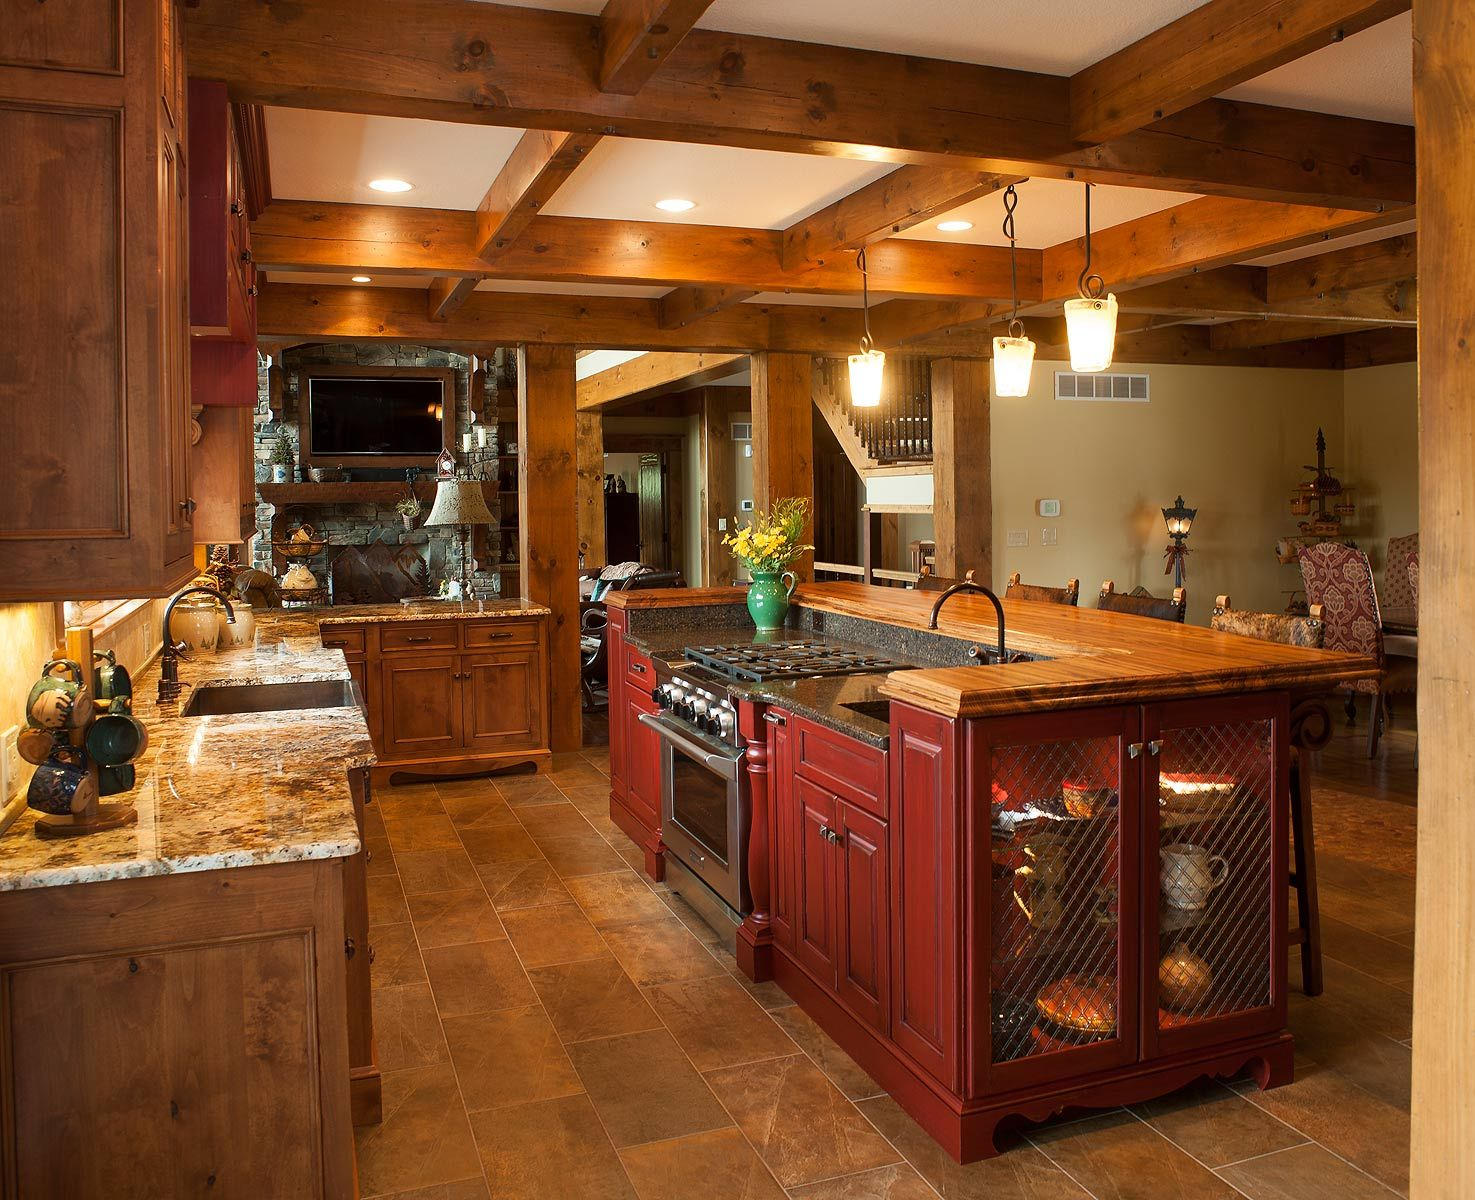 Rustic kitchen made with Knotty Alder wood. | Kitchens | Pinterest ...